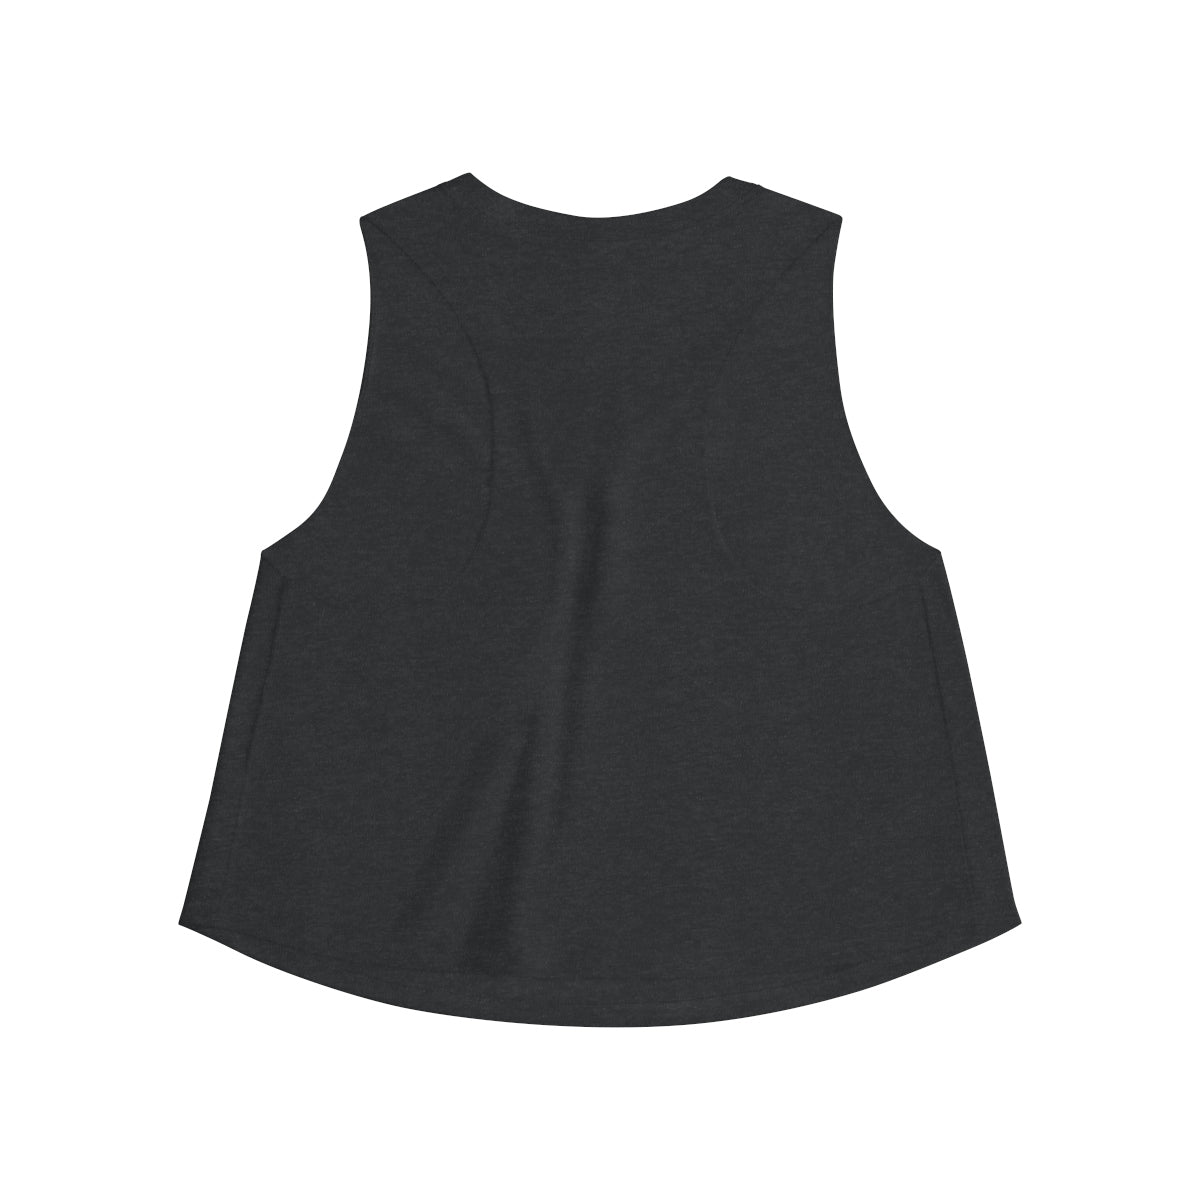 Real Estate InvestHer Women's Crop top